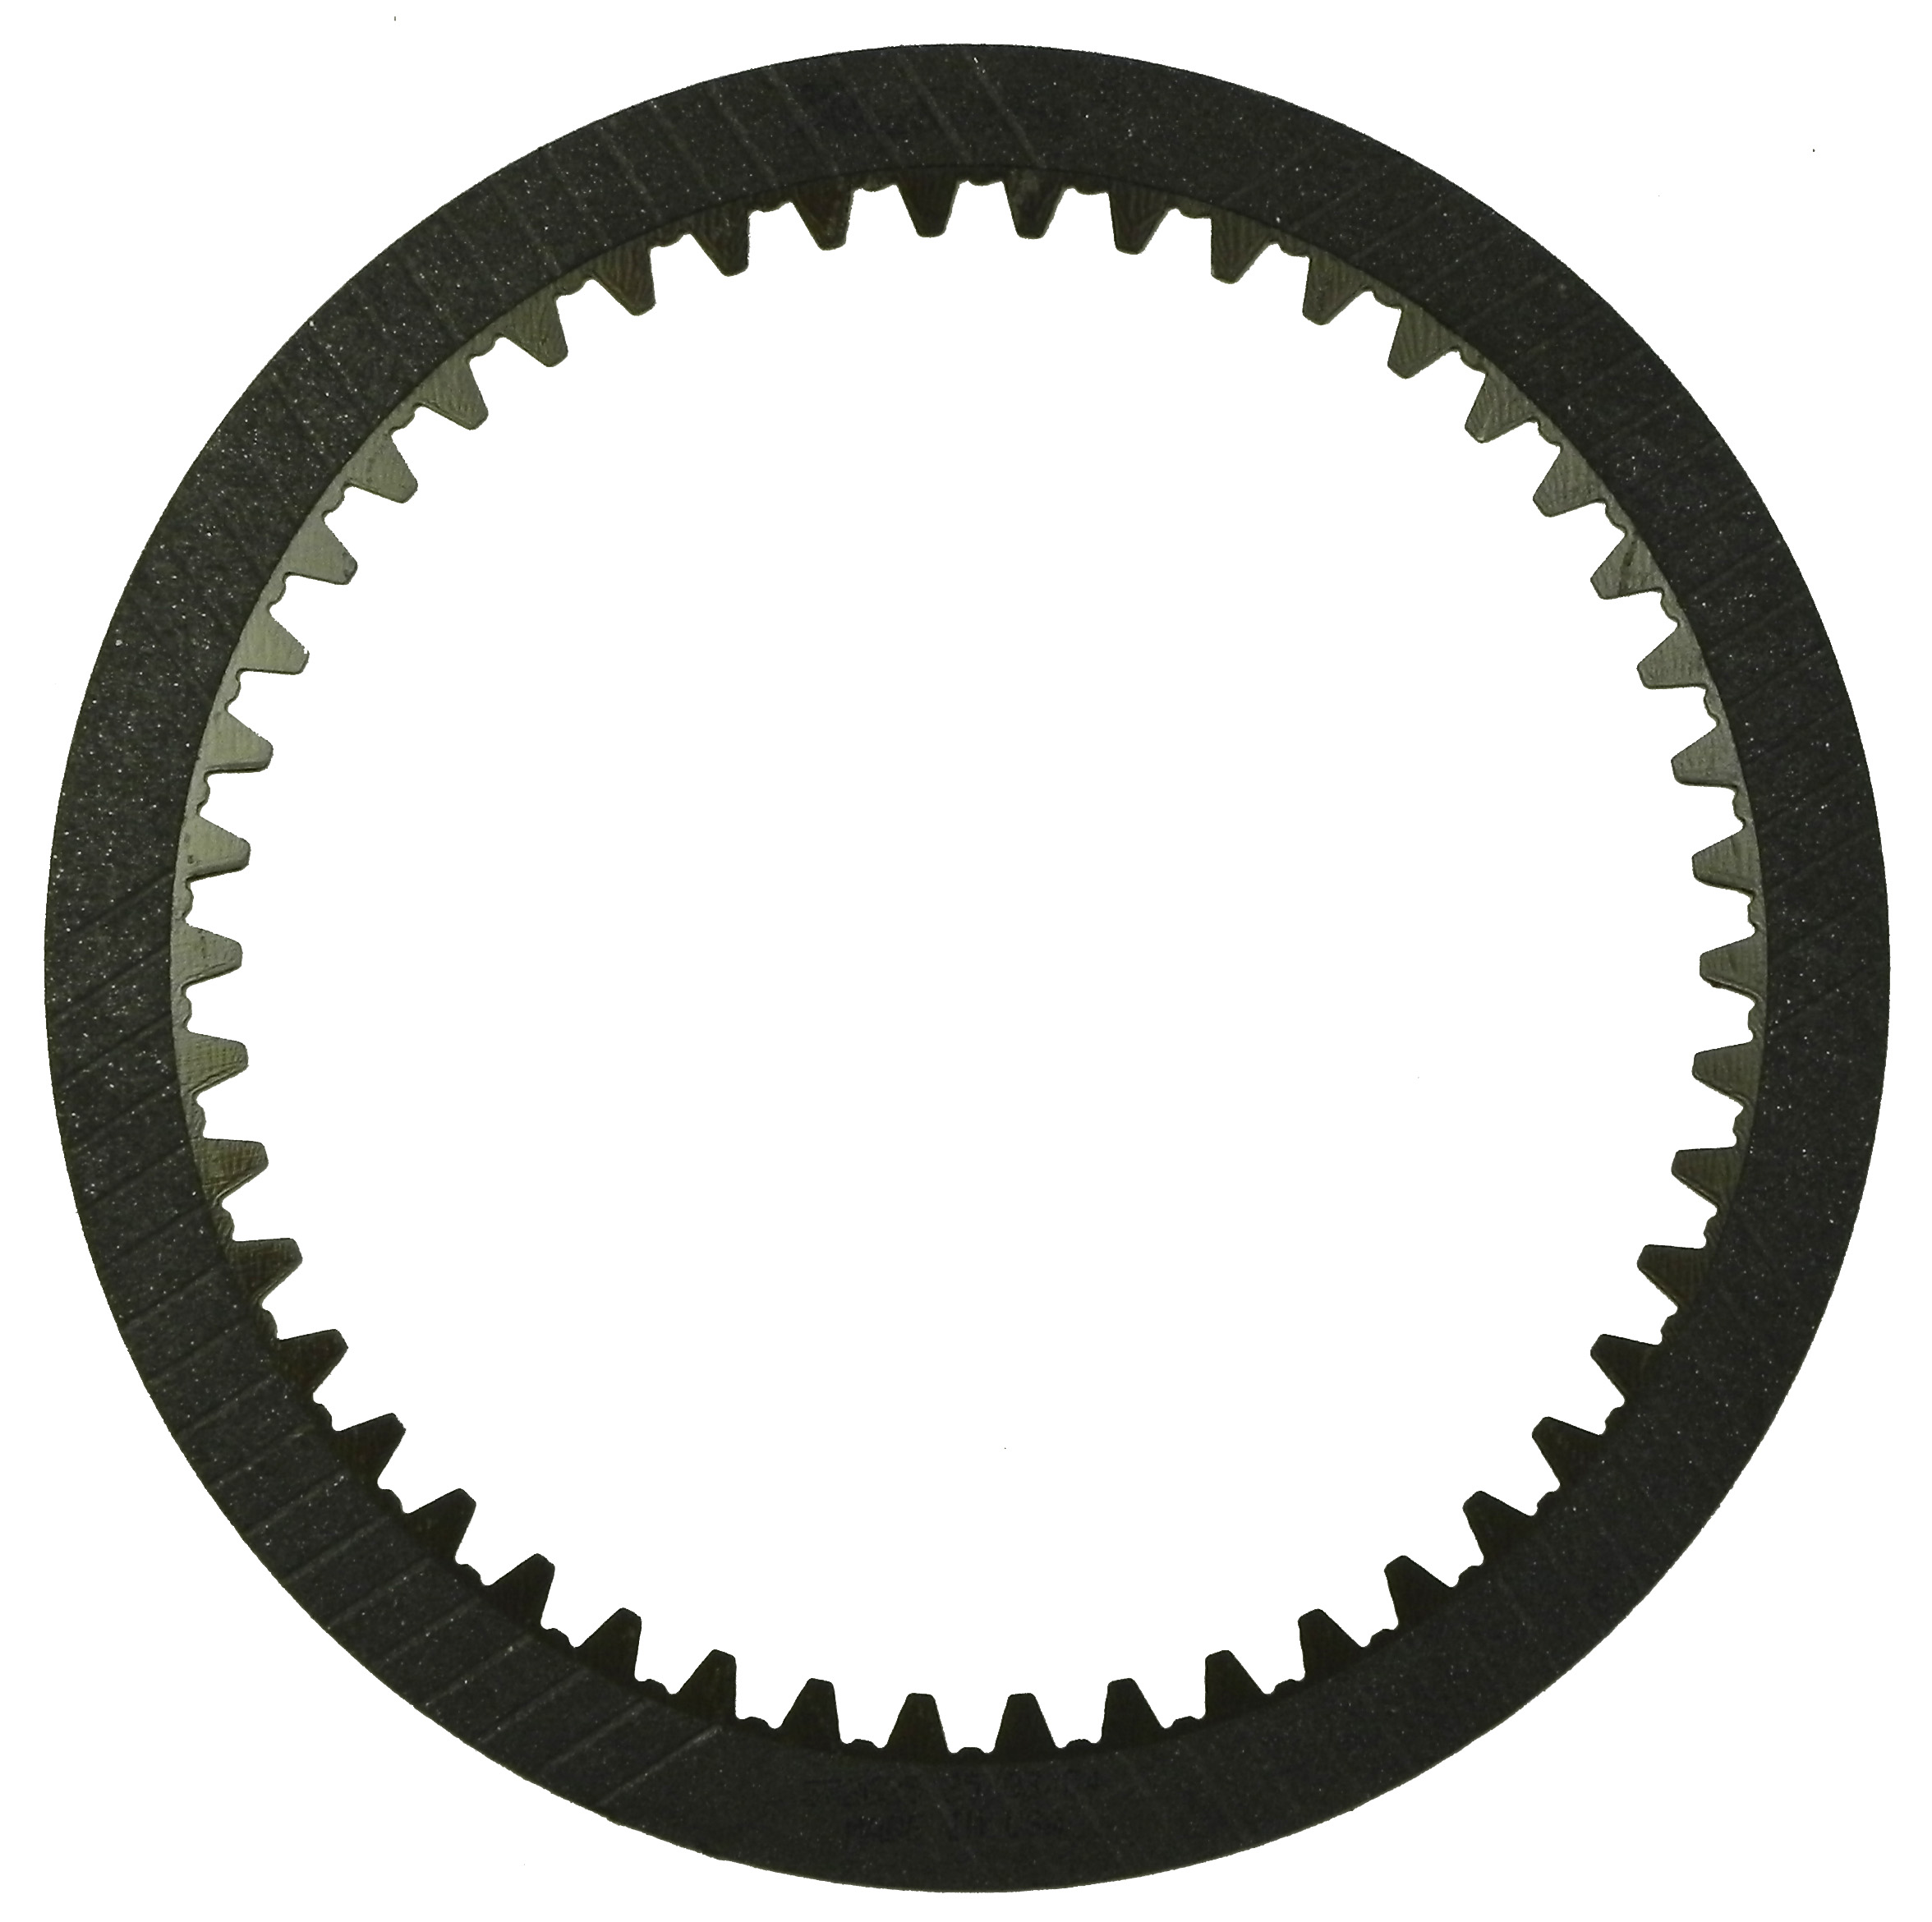 R572625 | 2005-ON Friction Clutch Plate High Energy B3 Clutch Double Sided, ID Spline High Energy